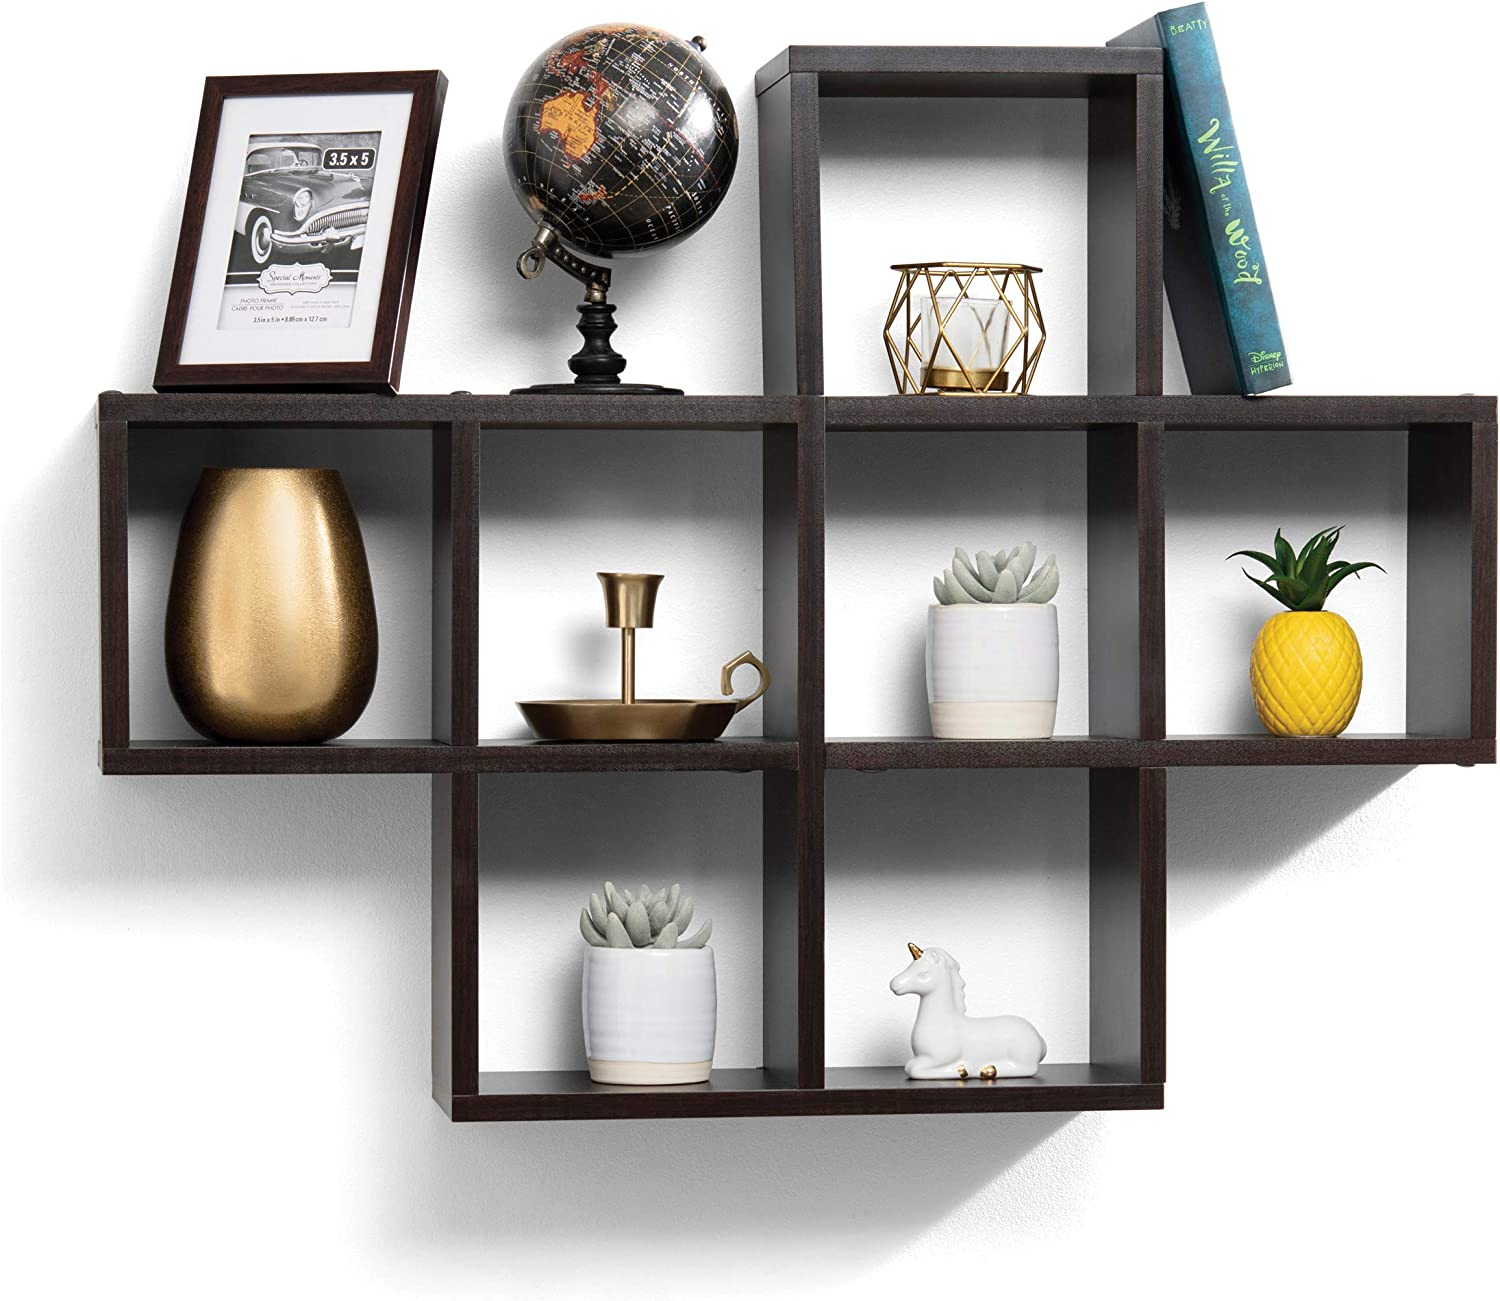 floating shelves with 10 square Cube wall shelves - Espresso Finish wall mounted shelves - Decorative Contemporary modern floating wall shelves - floating wood shelves great for Bedroom or Living Room